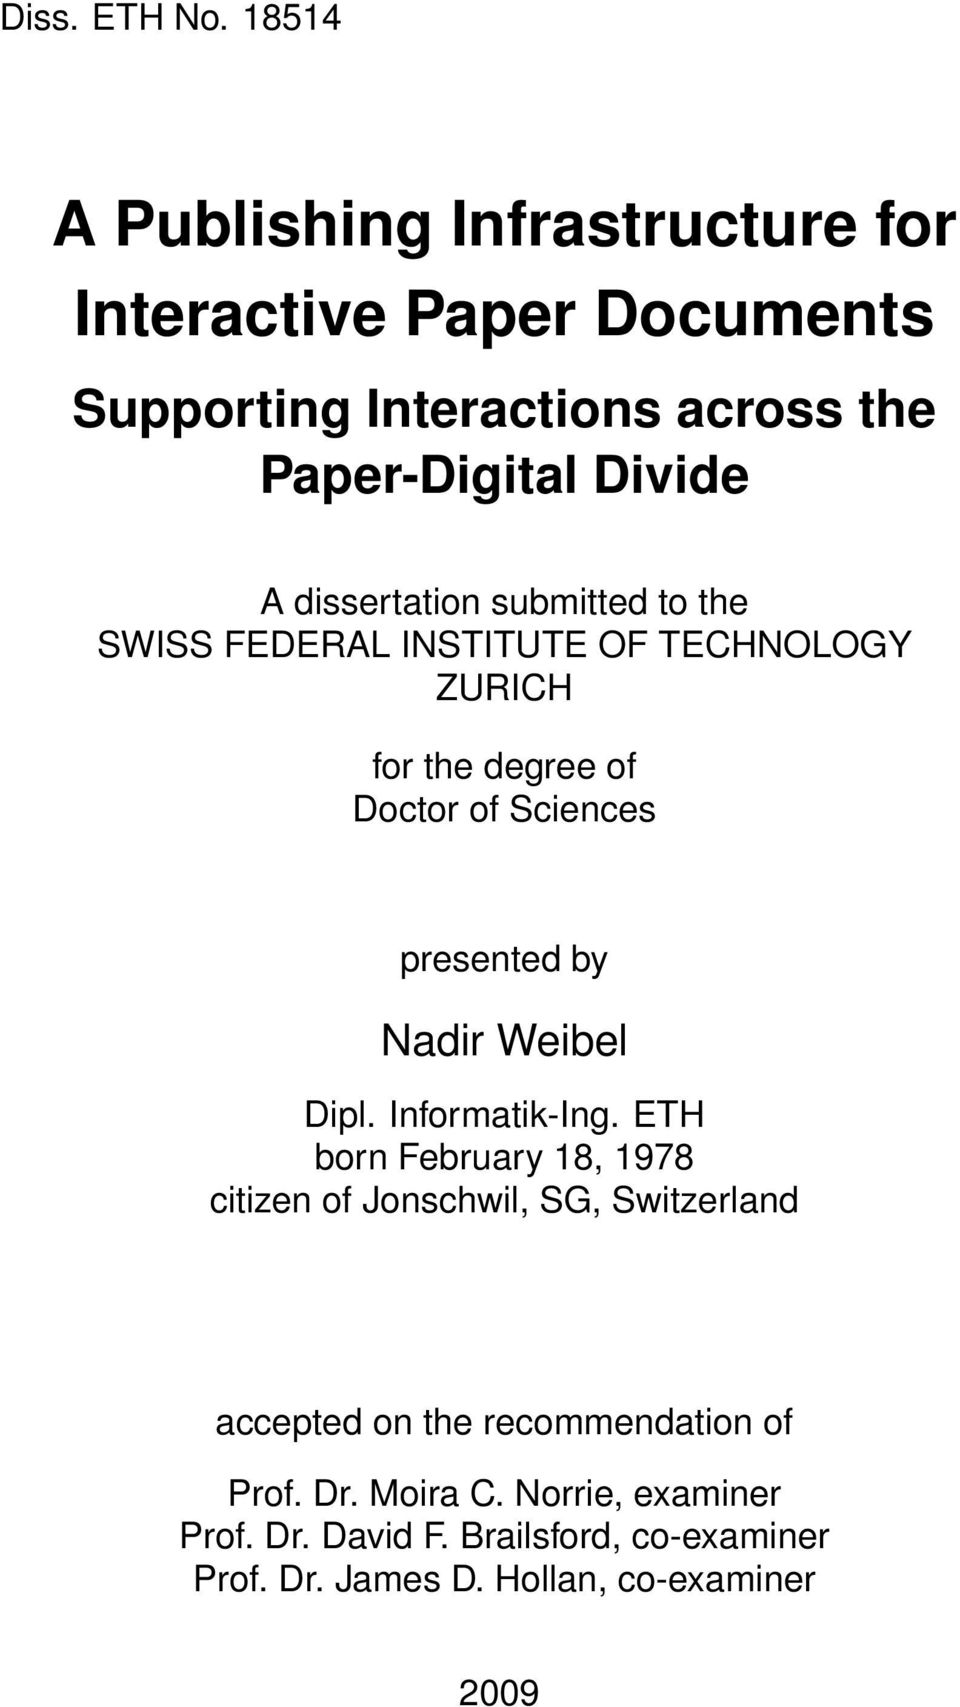 dissertation submitted to the SWISS FEDERAL INSTITUTE OF TECHNOLOGY ZURICH for the degree of Doctor of Sciences presented by